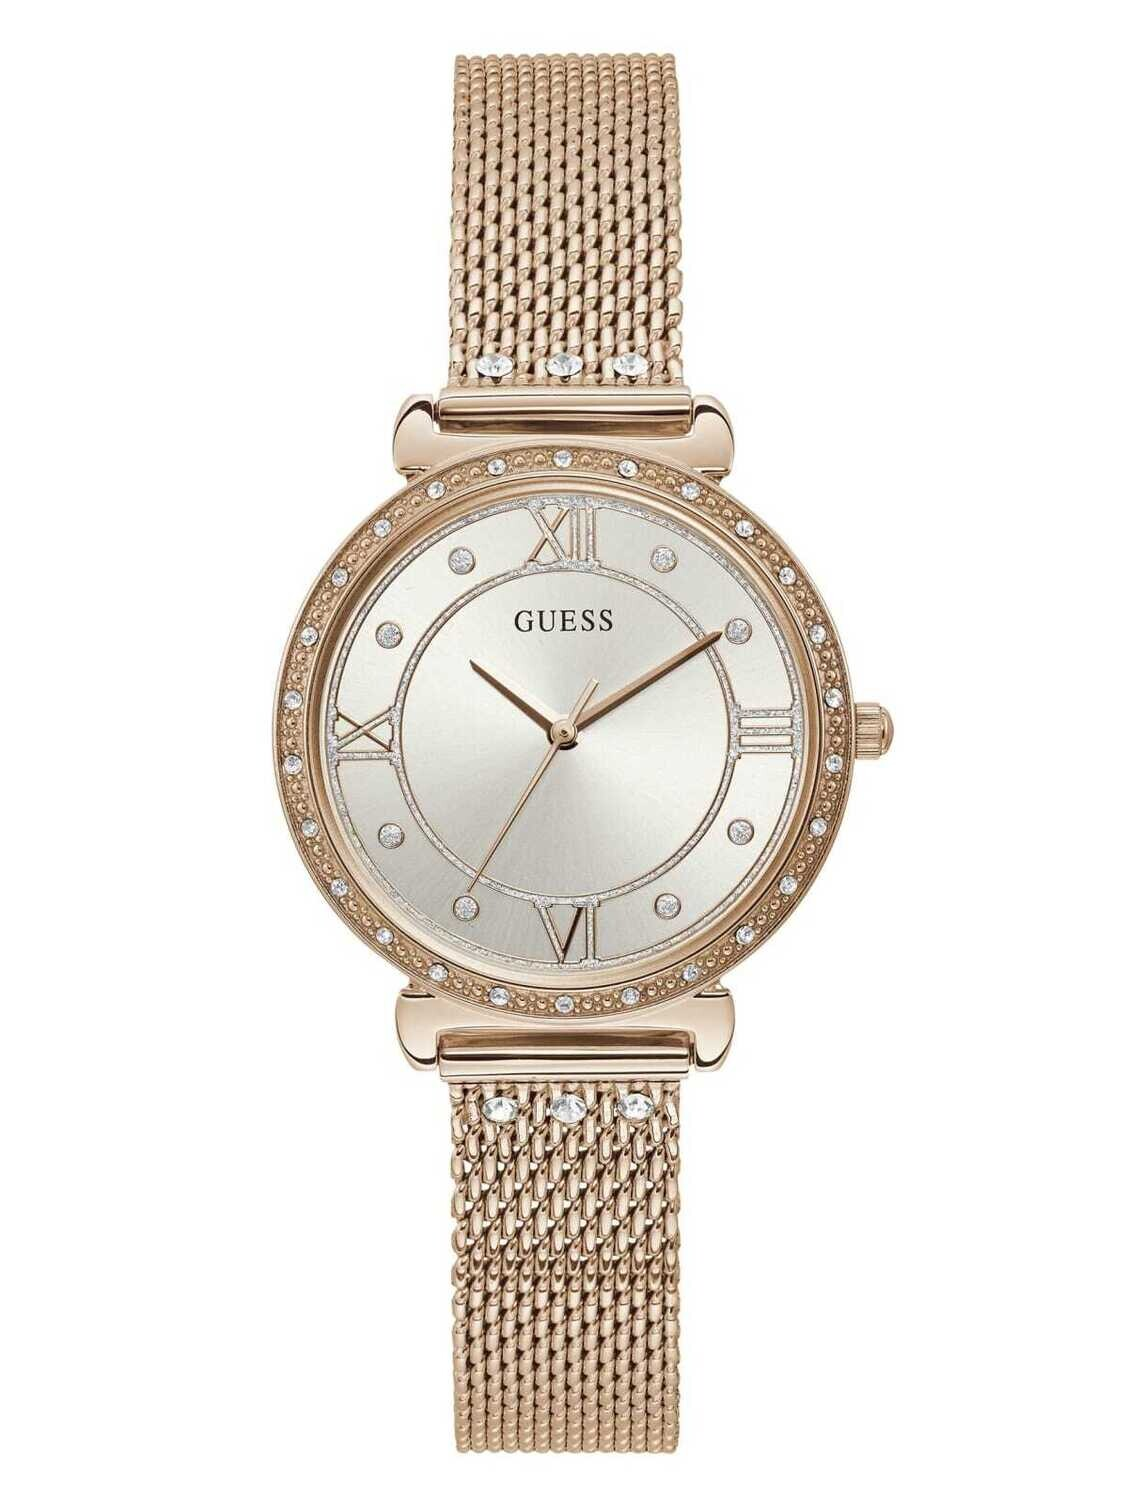 GUESS LDS WATCH WHITE DIAL/ROSE TONE STRAP